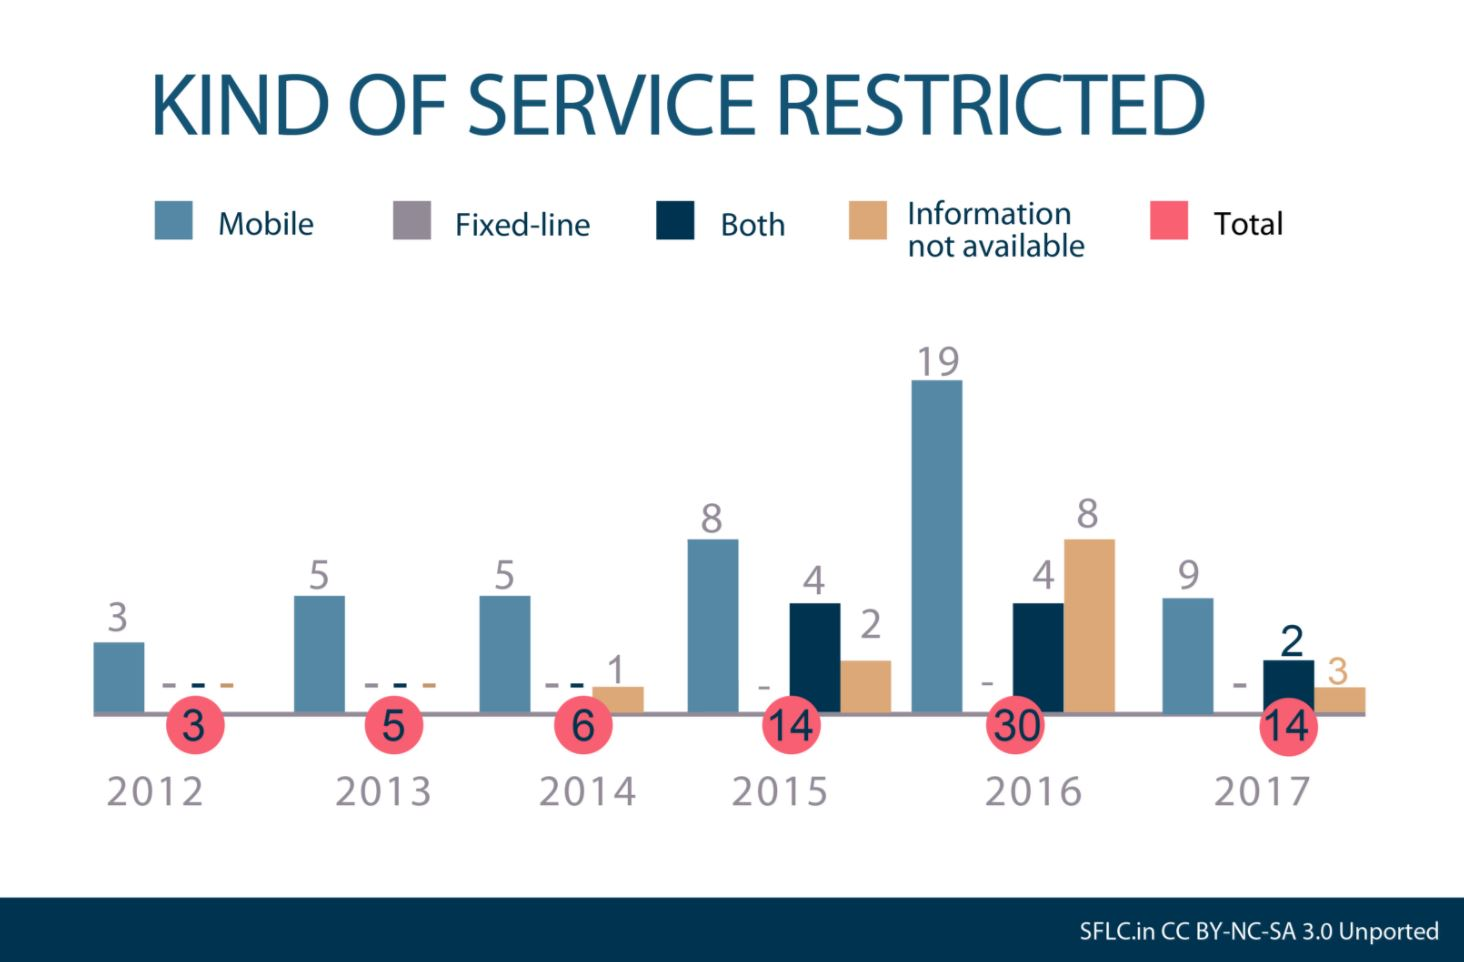 Kinds of services restricted